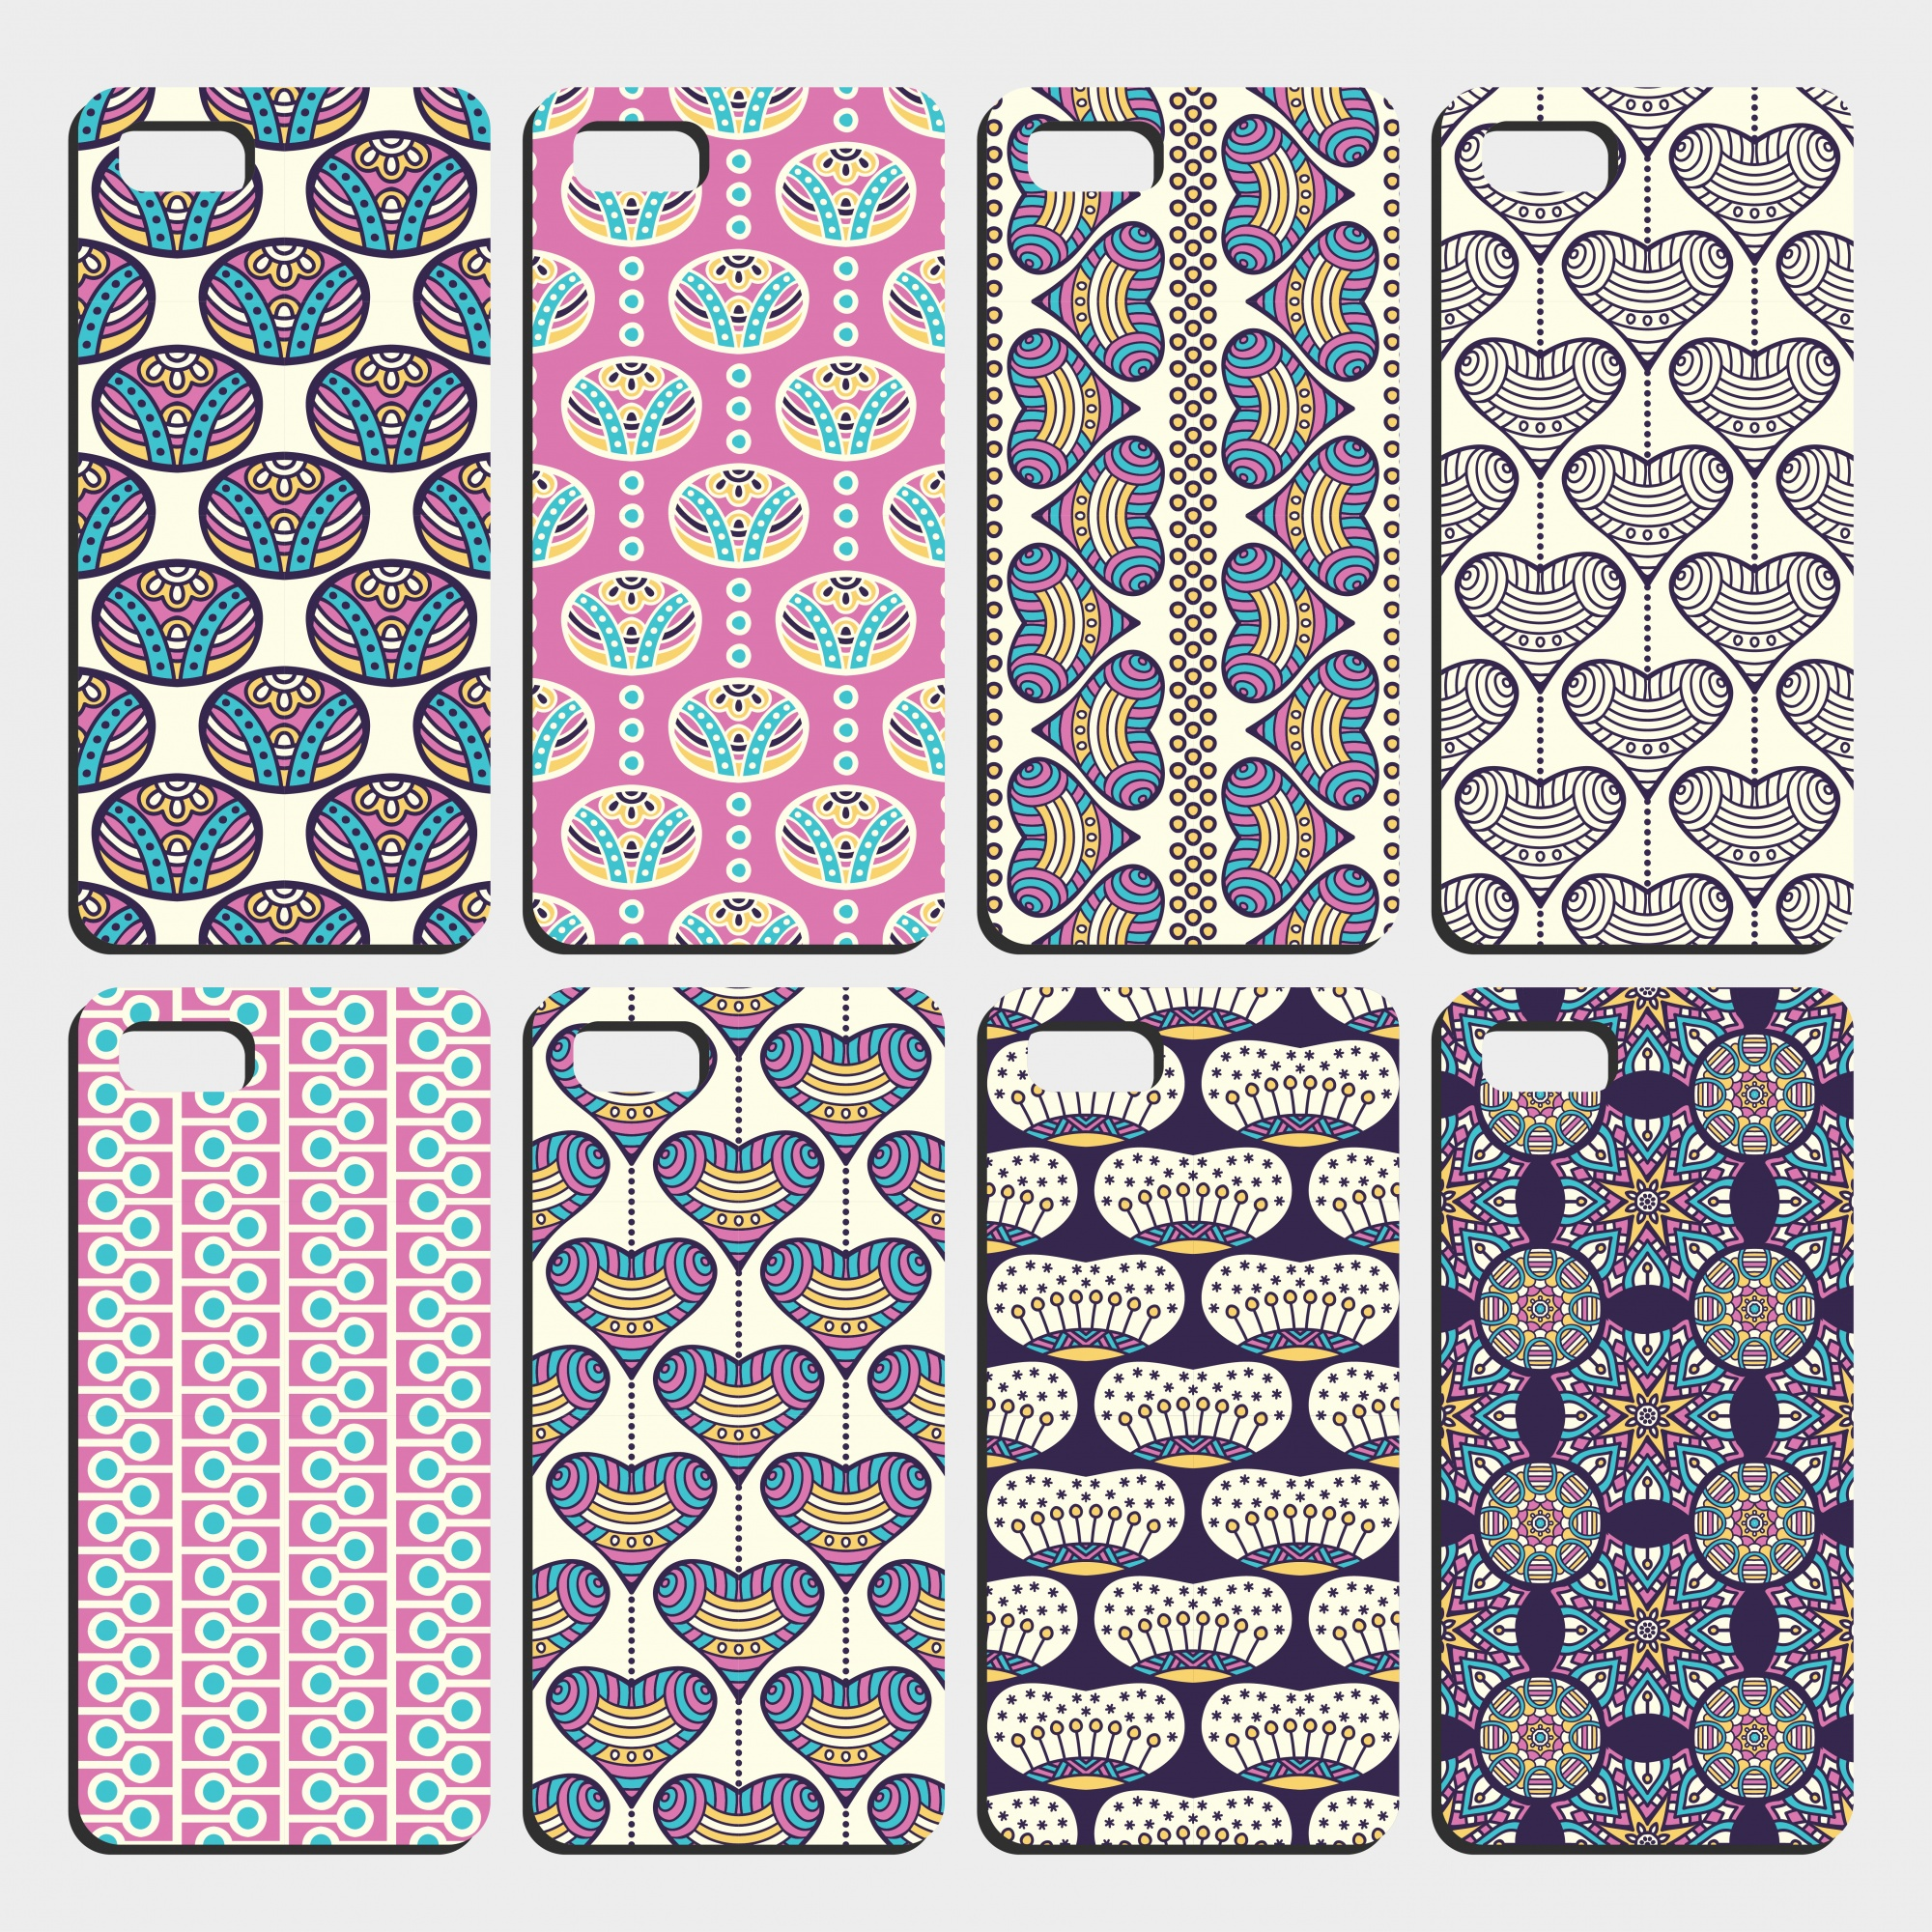 Eight different smartphone cover templates